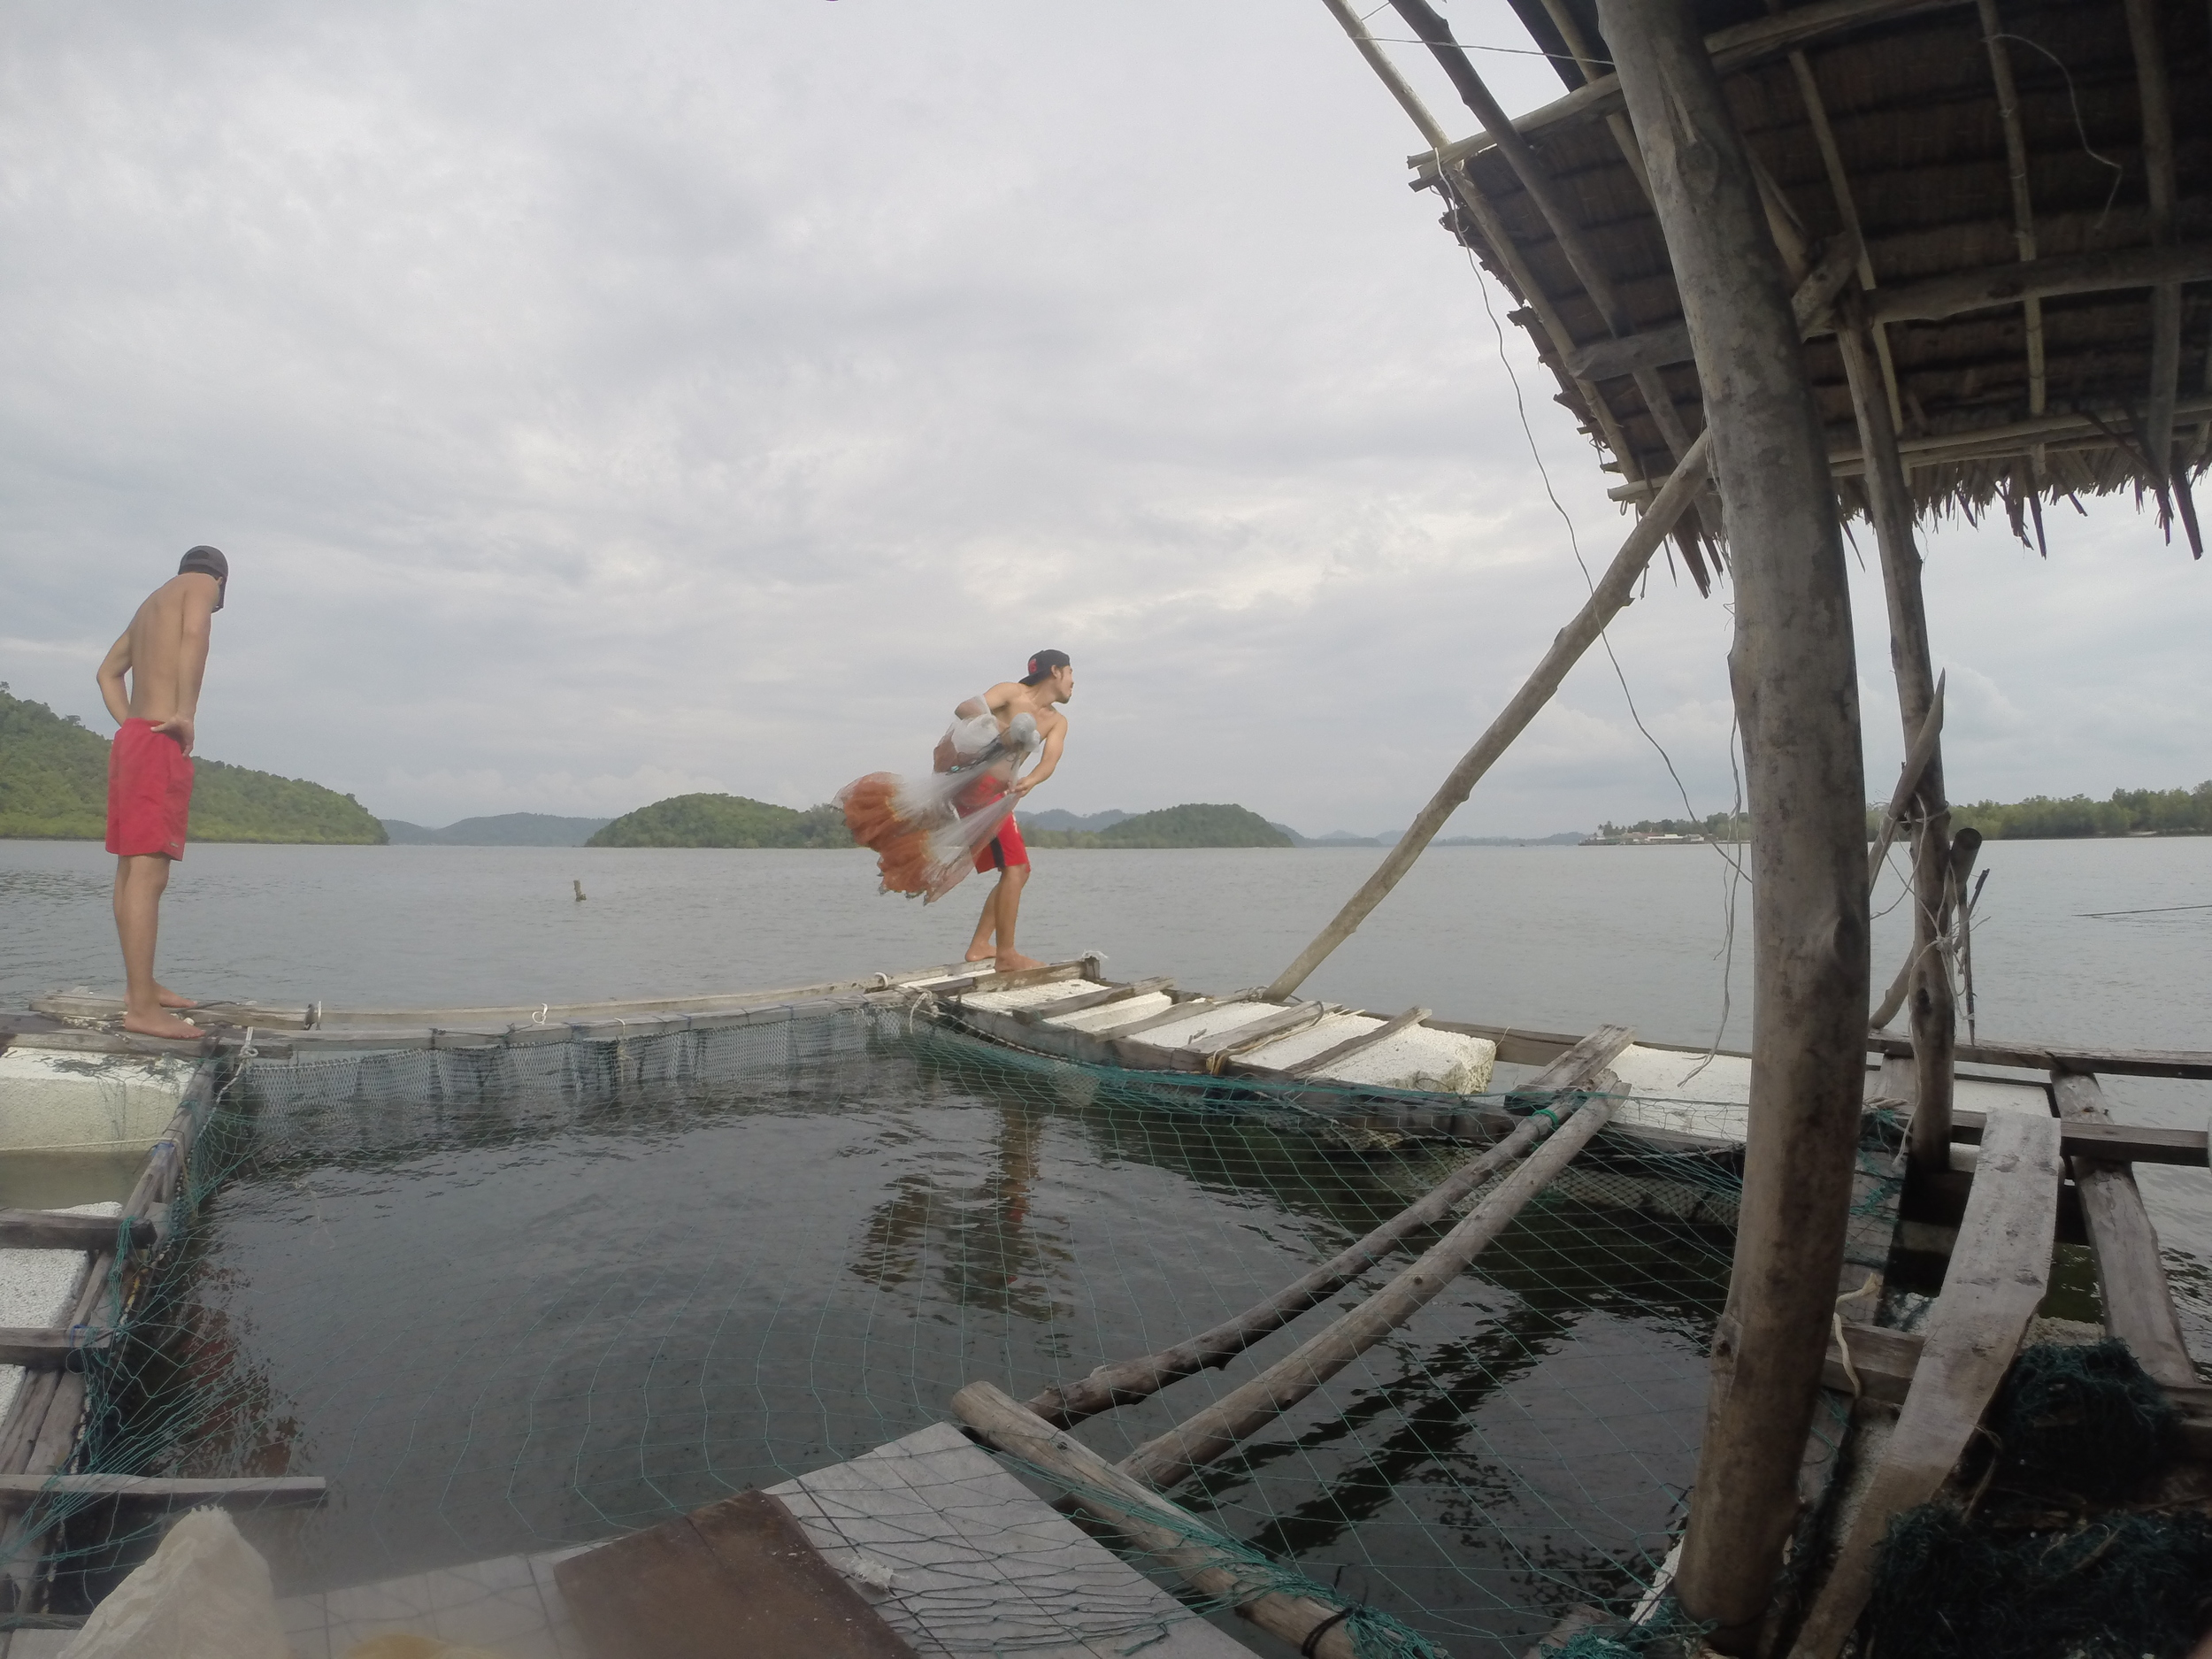 On the floating fish farm, watching Oh throw the big fishing net into the water.